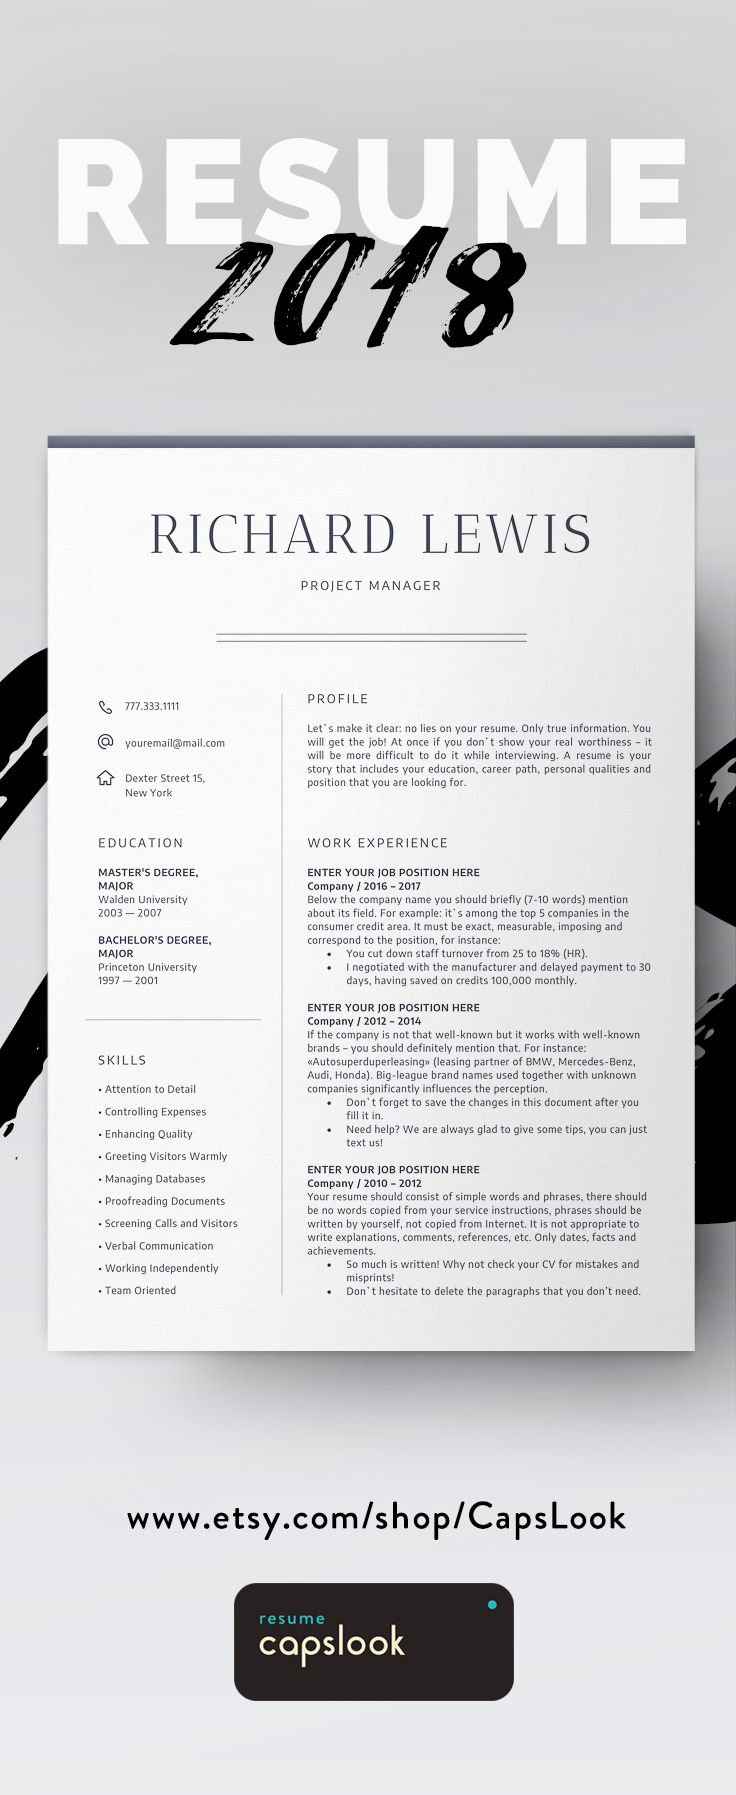 Create Your Resume Now! Fast and Easy to Use. Tips from